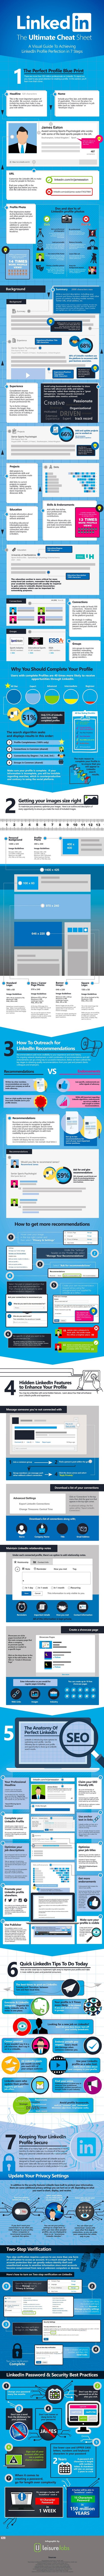 How to Craft the Perfect LinkedIn Profile: A Comprehensive Guide #Infographic | Surviving Social Chaos | Scoop.it